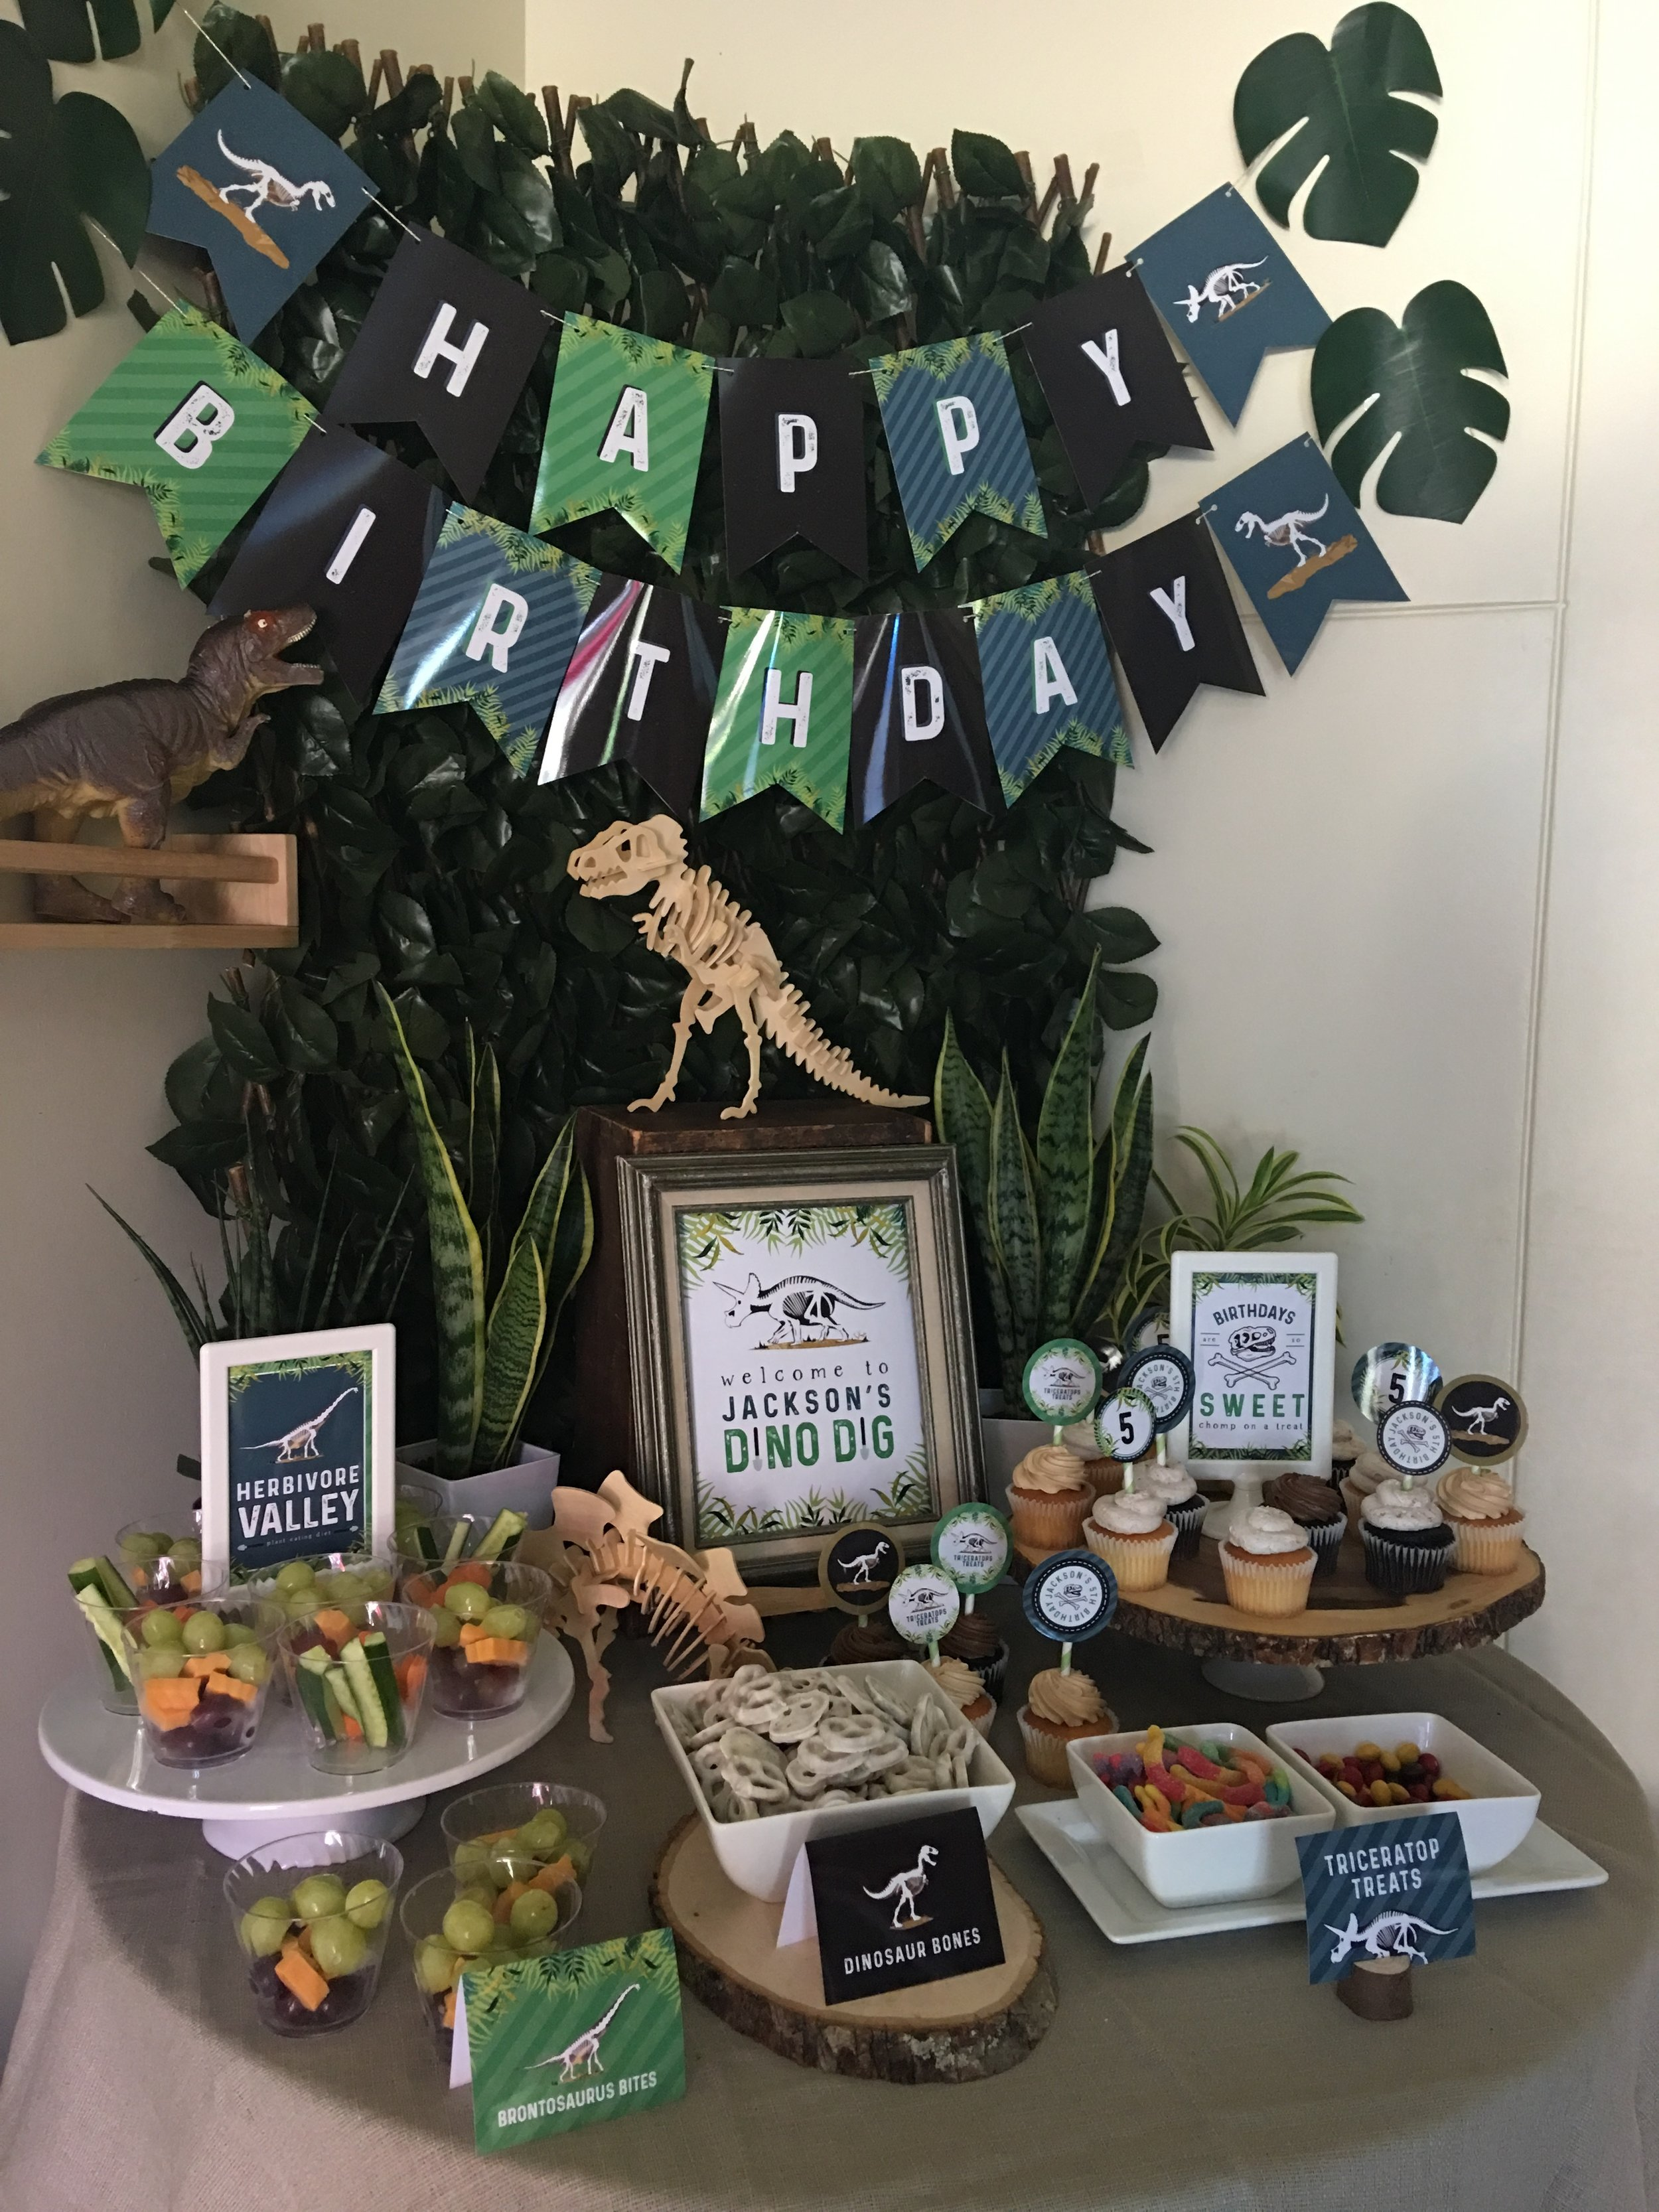 Dino Dig Party set up from MKKM Designs. Click to get some free printables and party ideas!